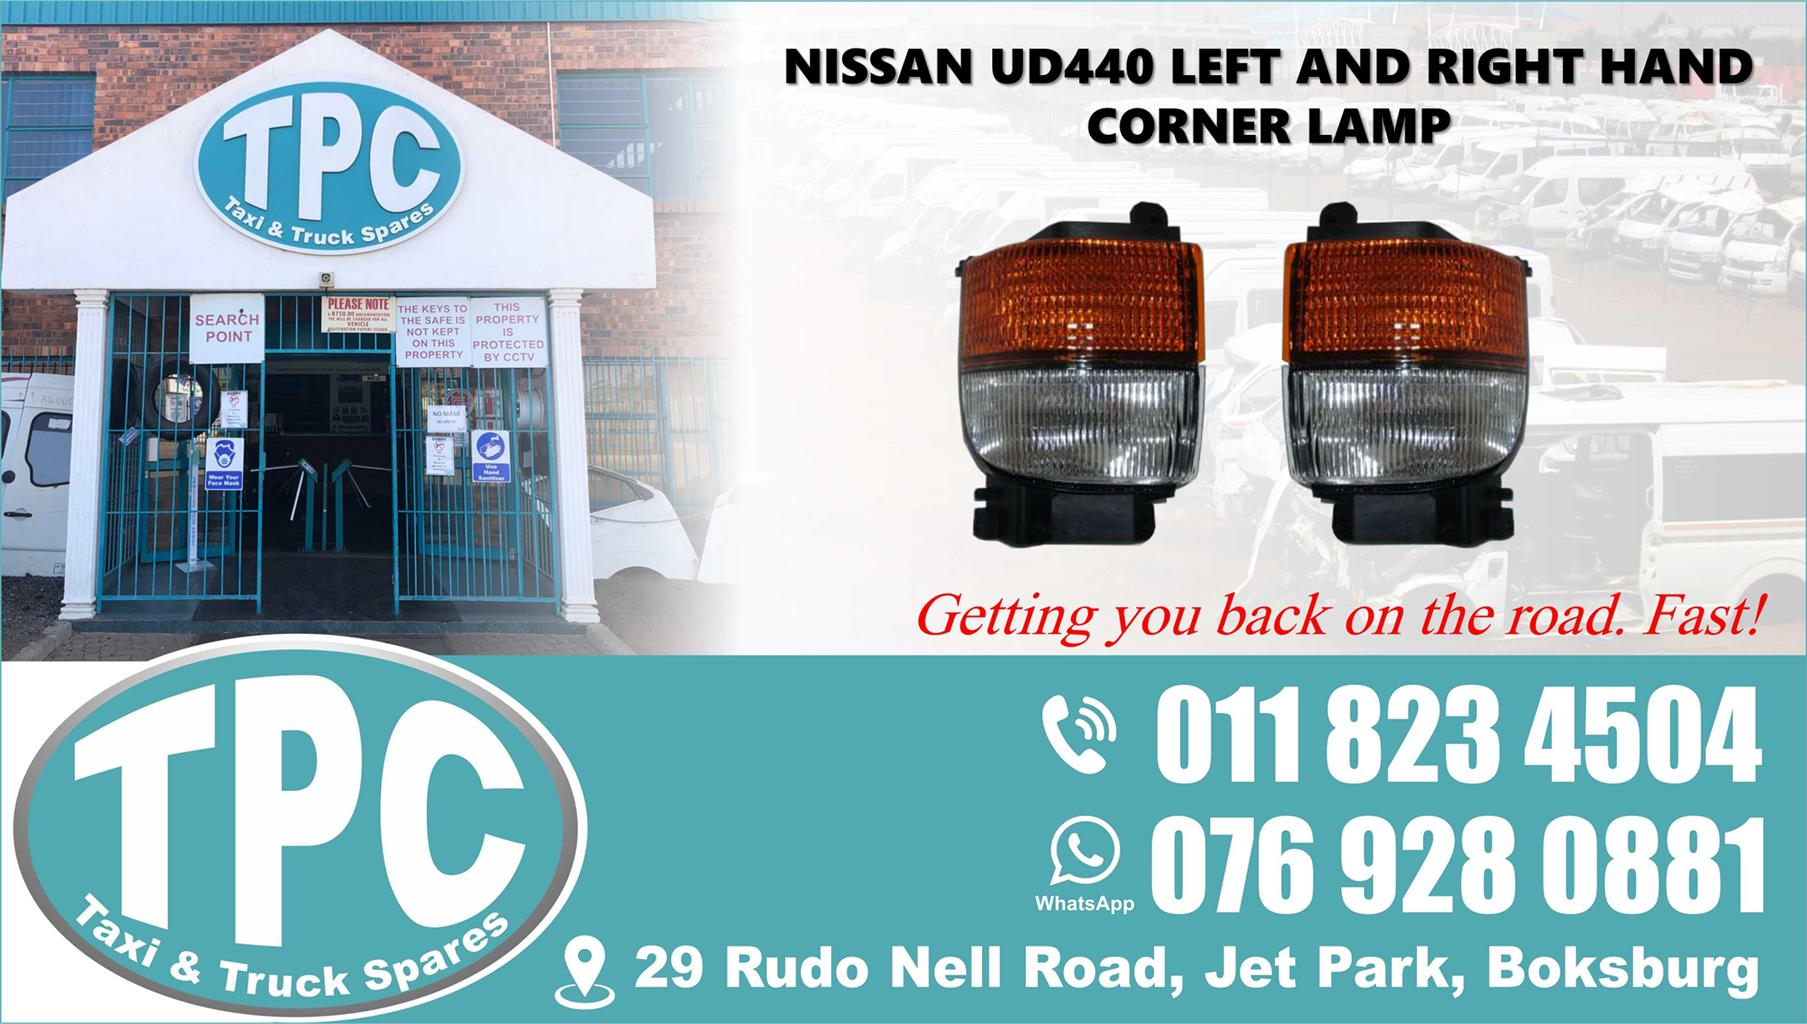 Nissan UD440 Left and Right Hand Corner Lamp